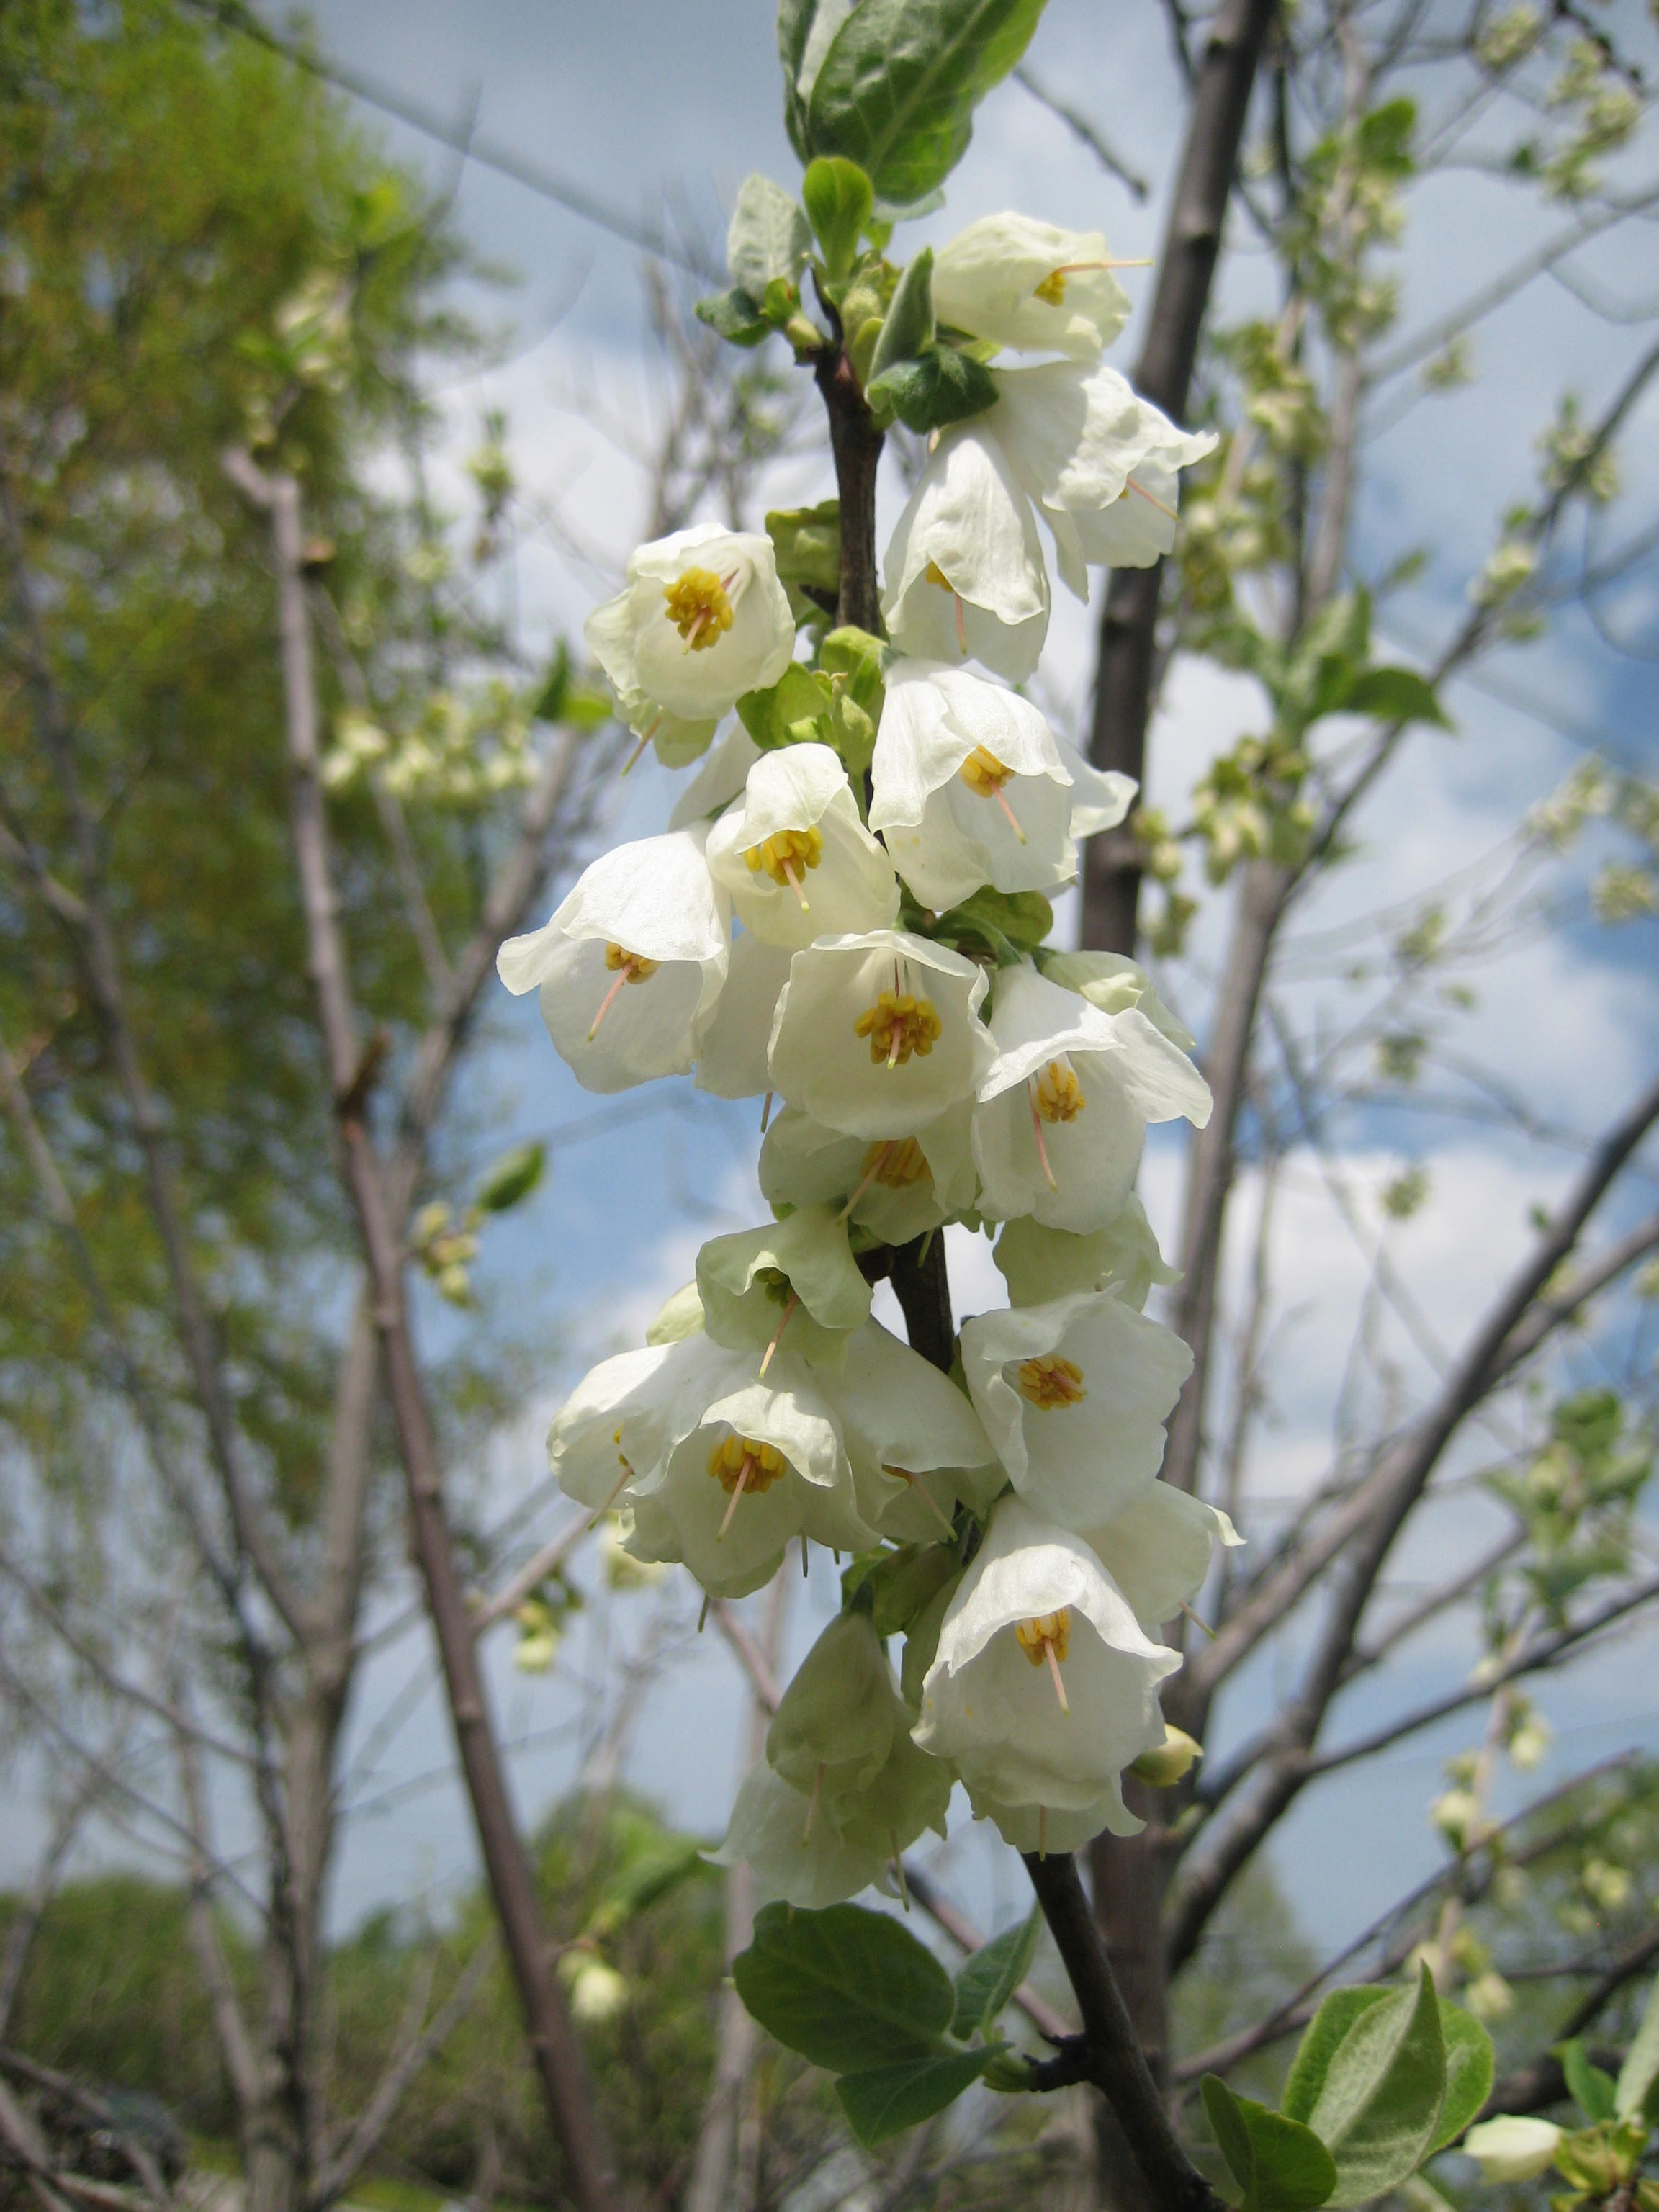 Willoway nurseries inc the midwests premier wholesale grower halesia carolina mightylinksfo Image collections